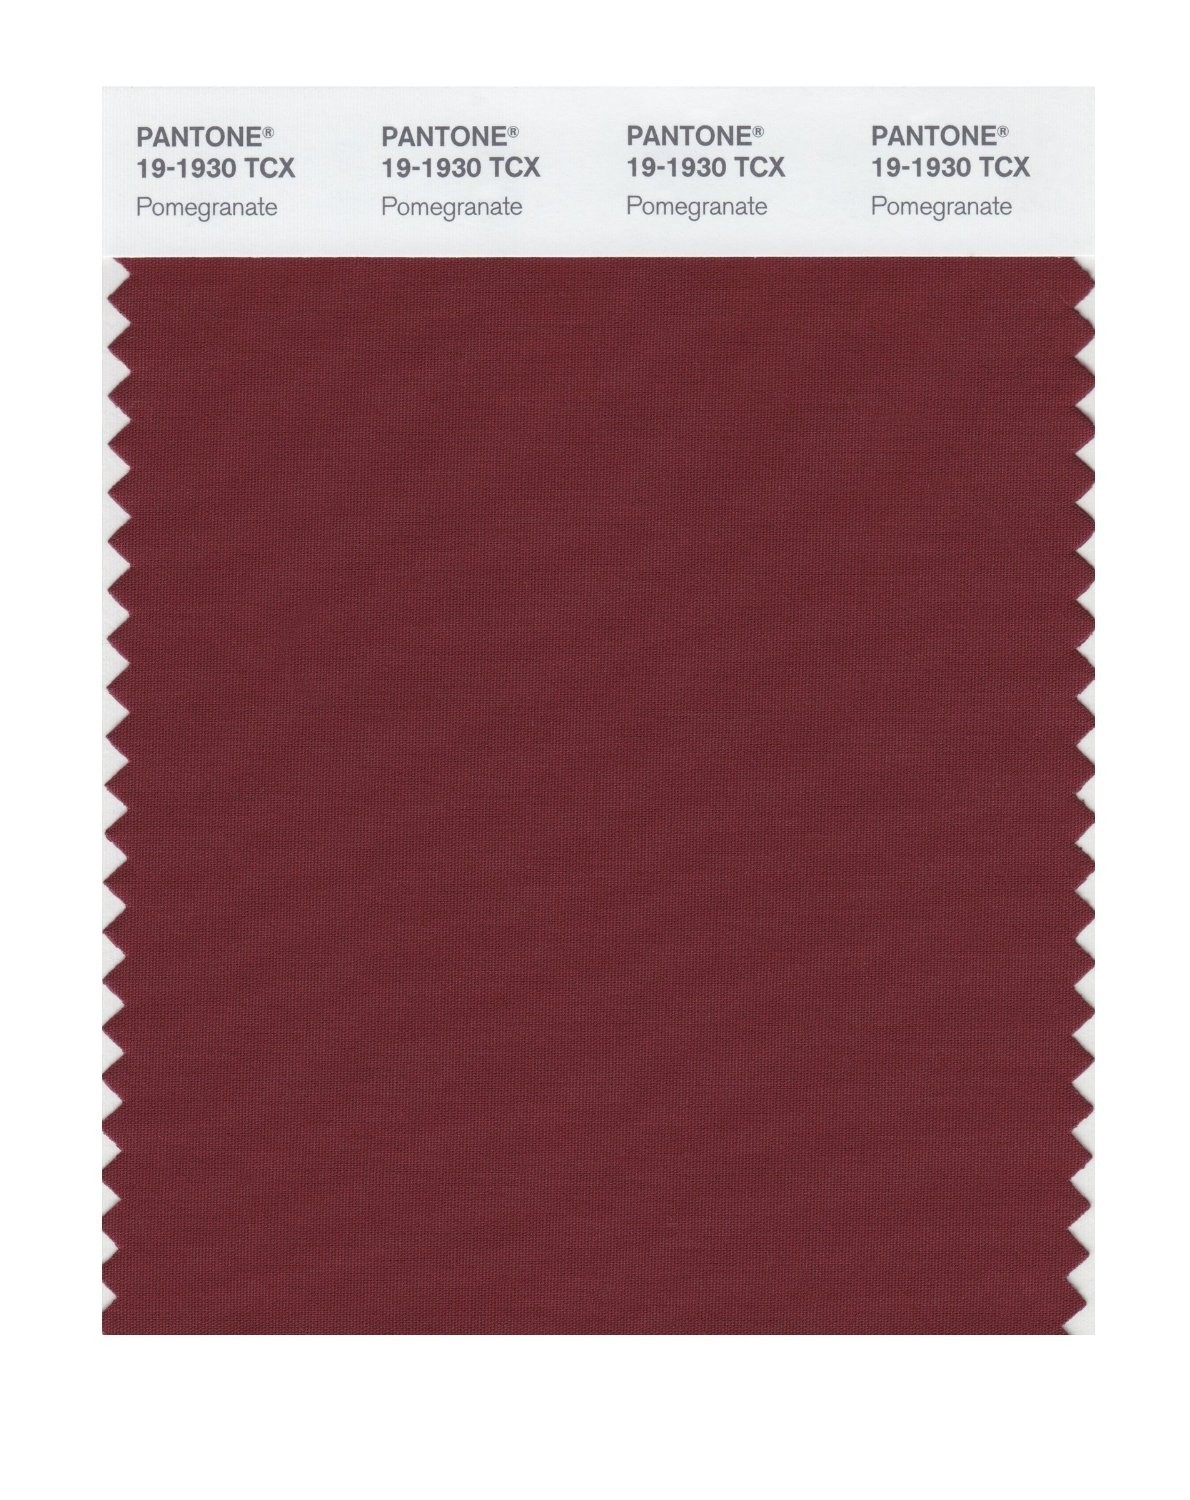 Pantone 19-1930 TCX Swatch Card Pomegranate